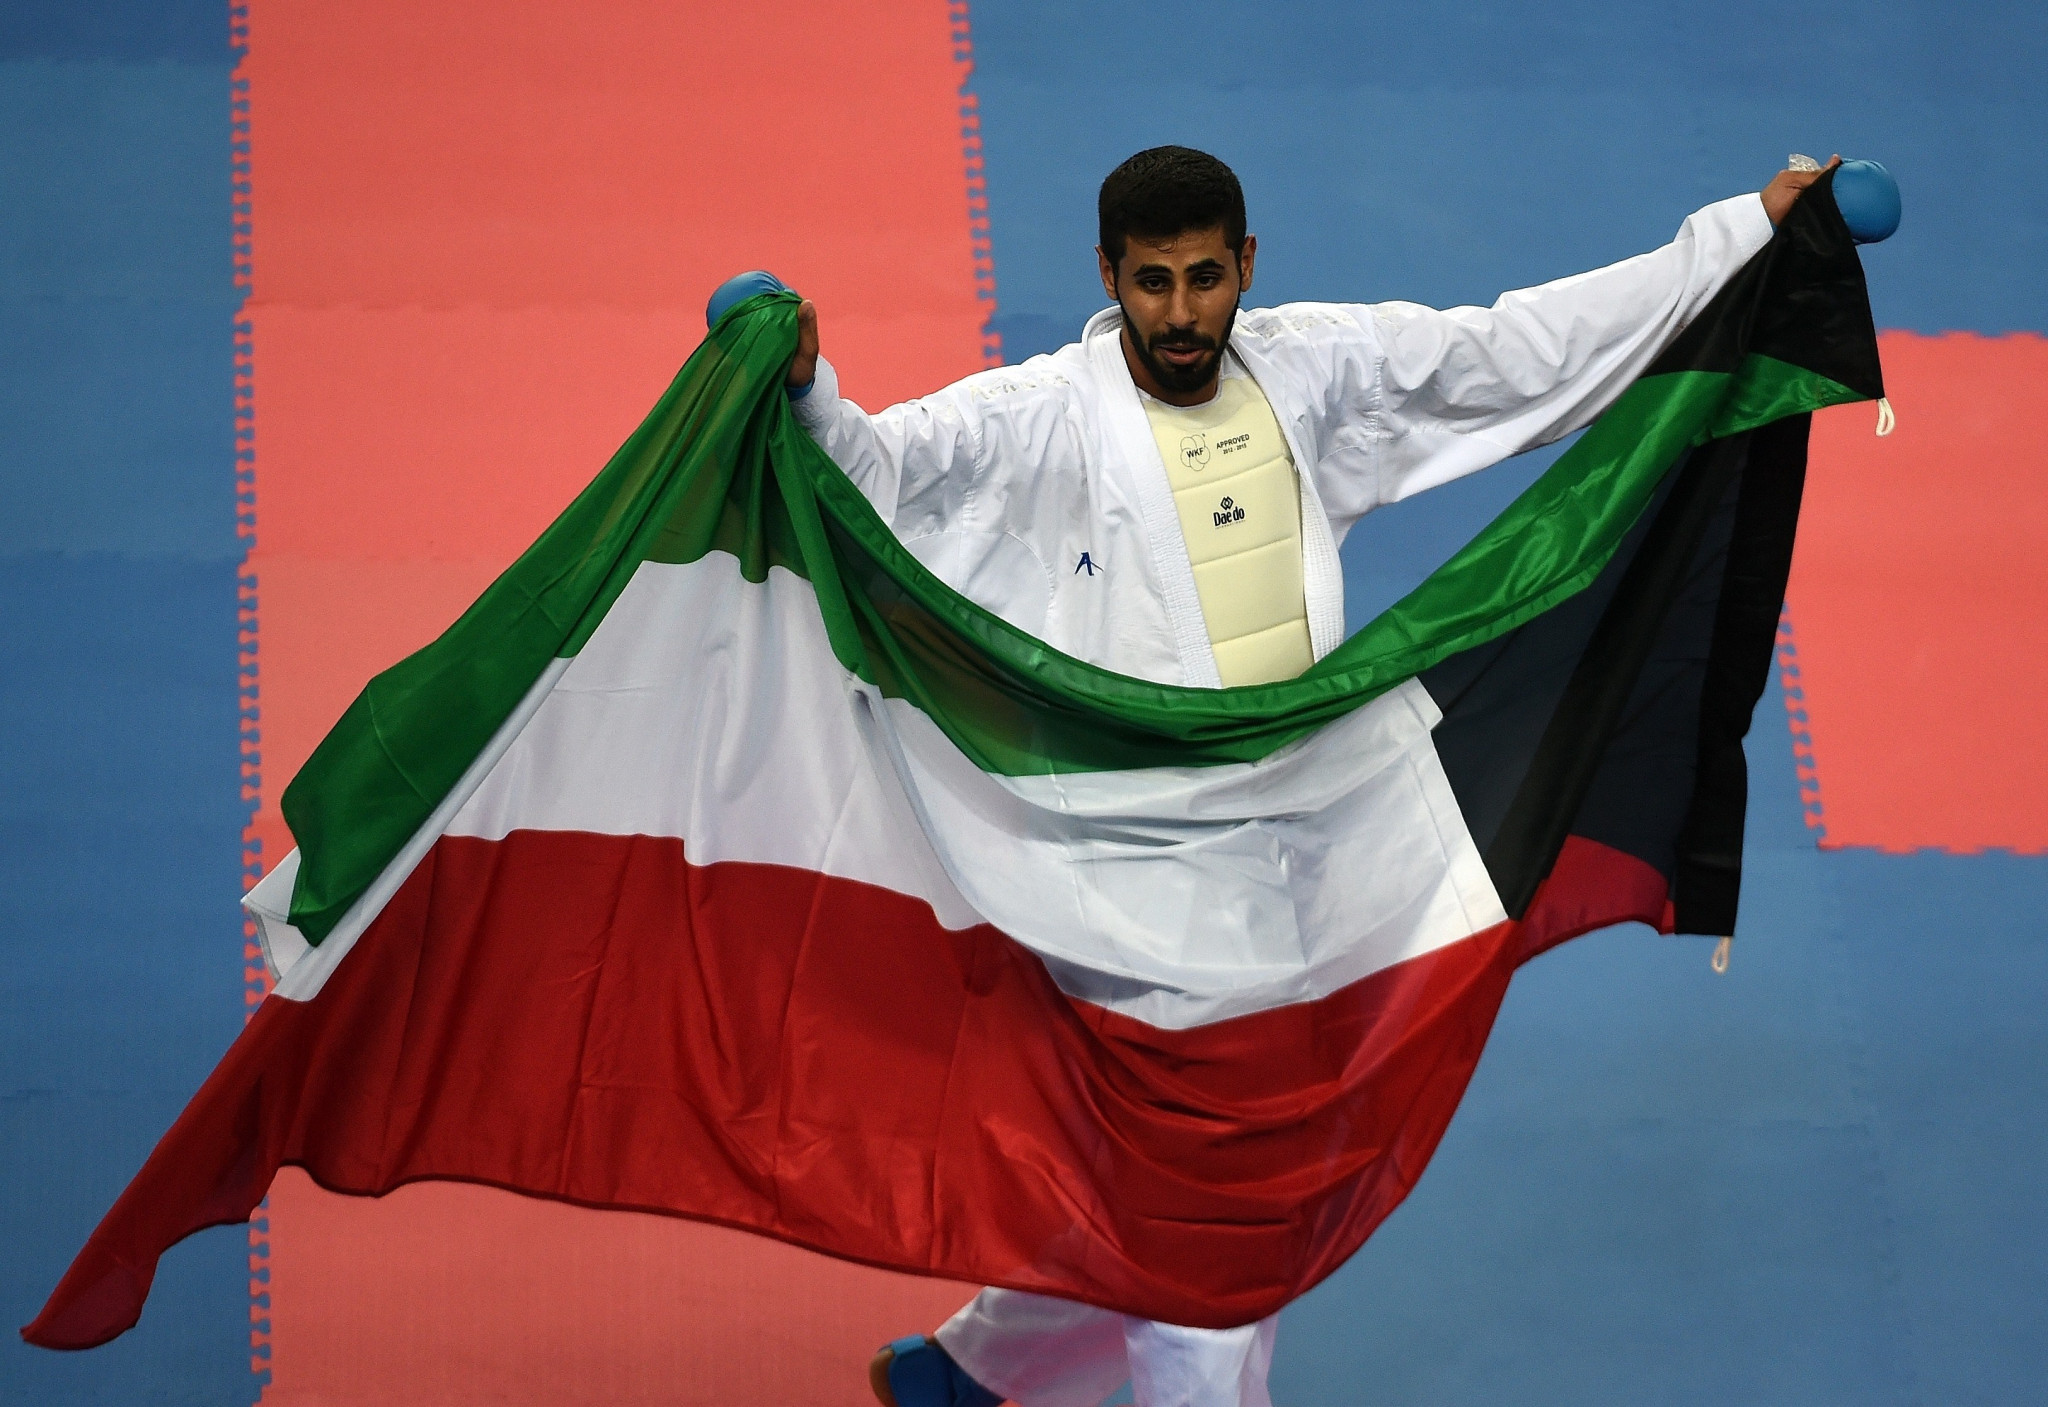 Rashed Al-Mutairi won one of Kuwait's three gold medals at the 2014 Asian Games in Incheon with victory in the men's kumite over-84 kilograms event in karate ©Getty Images